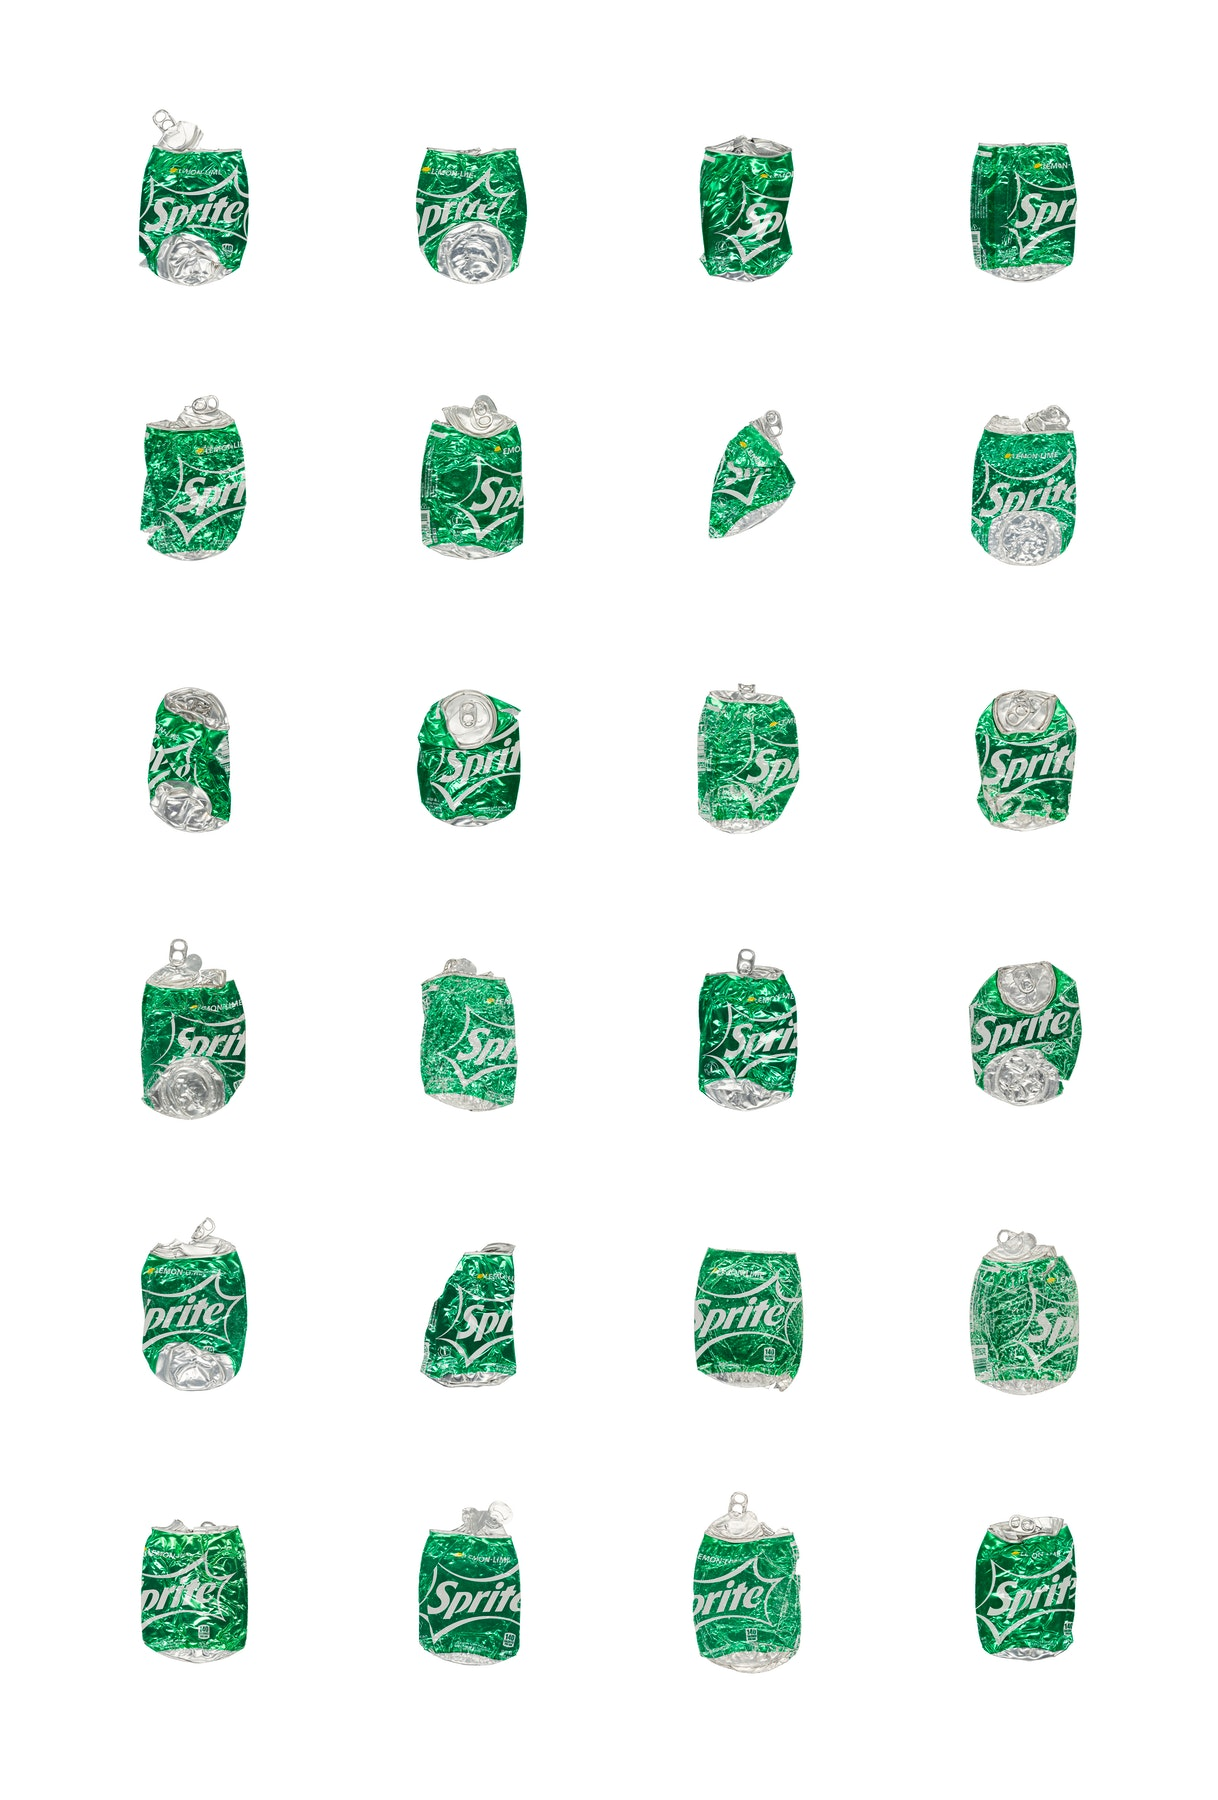 A Case of Sprite by Charles Cohen